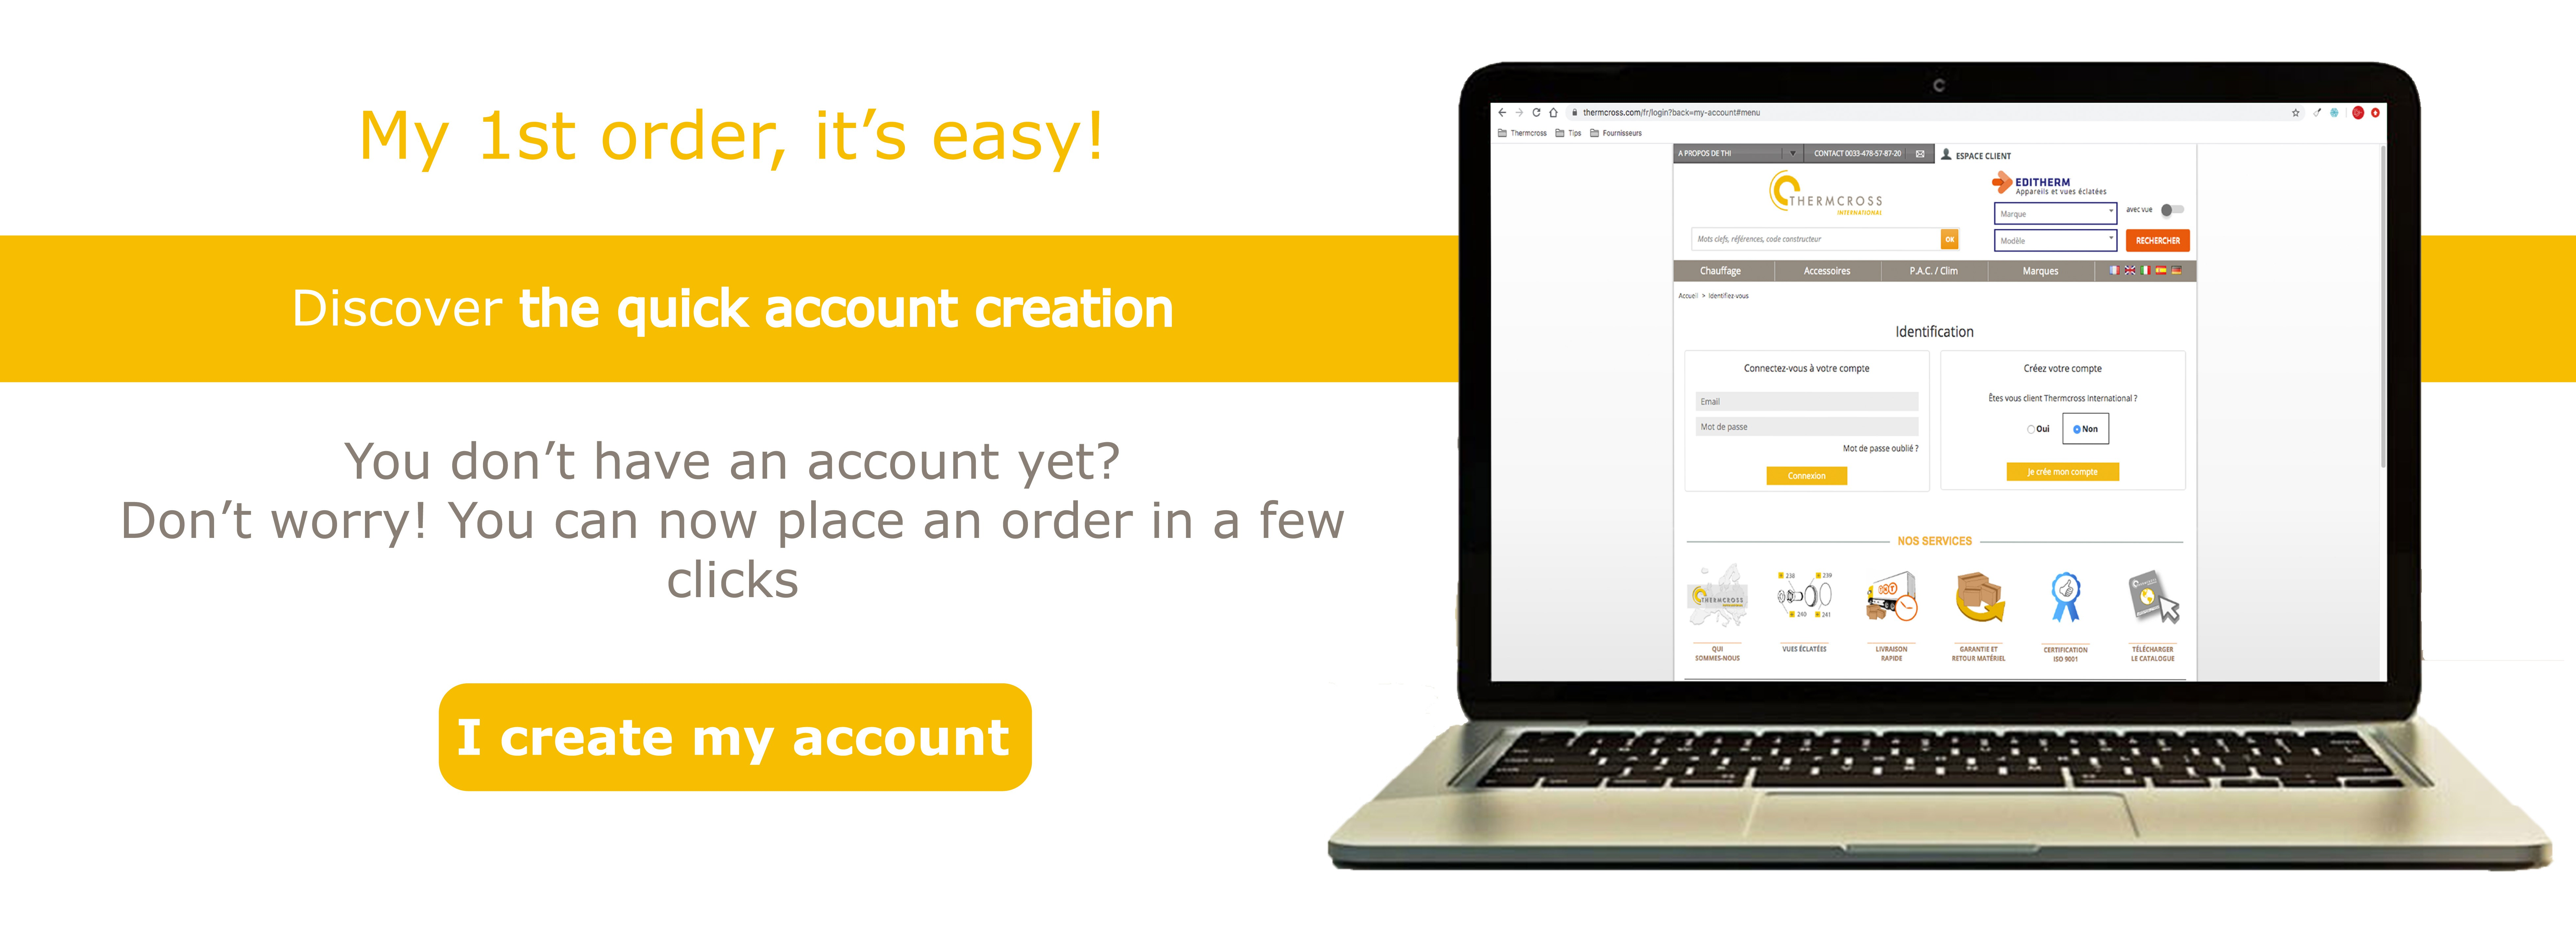 Discover the quick account creation